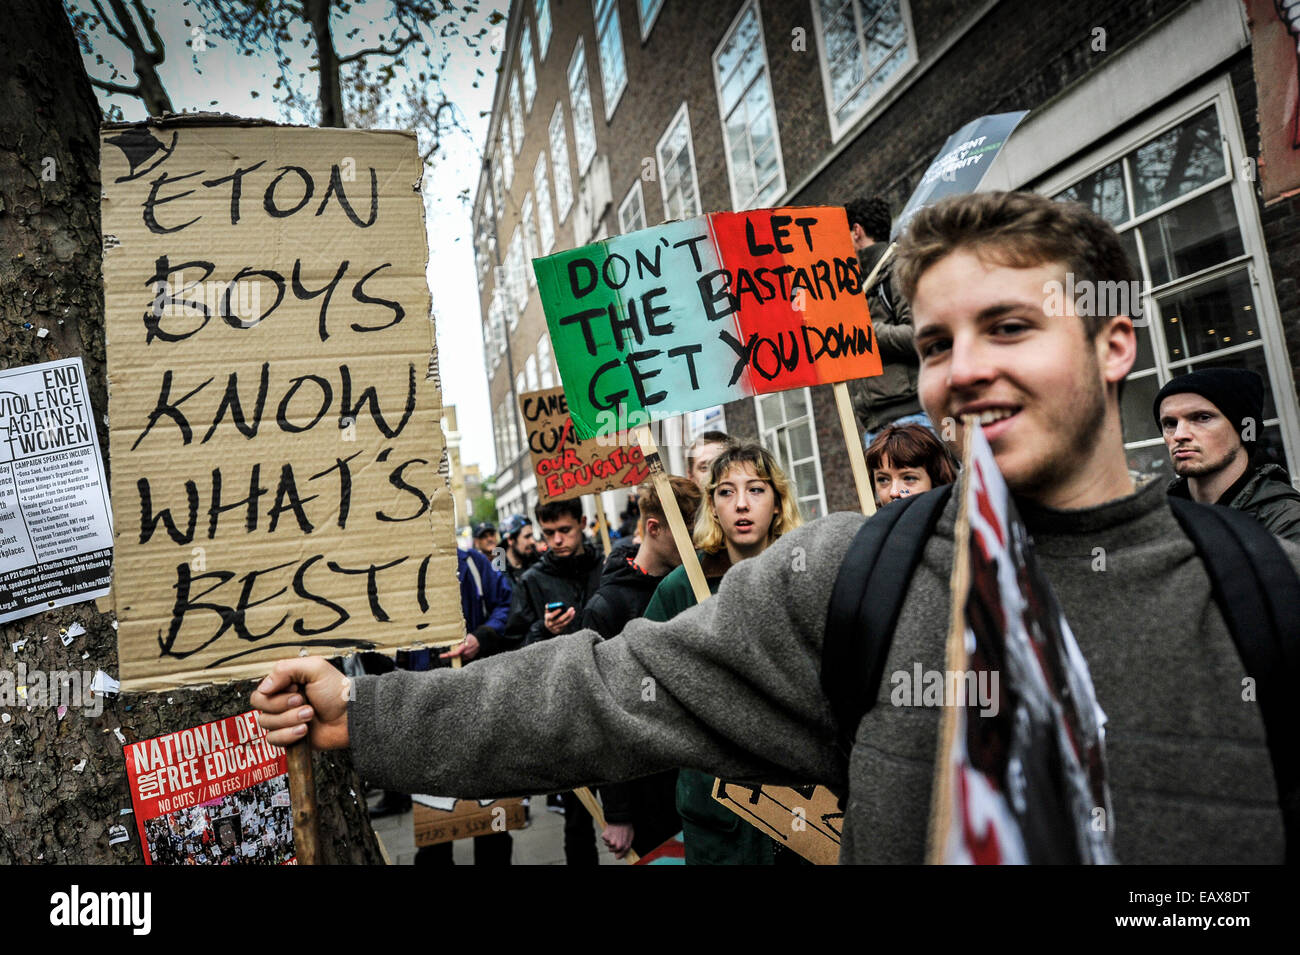 A student demonstration against education fees. - Stock Image